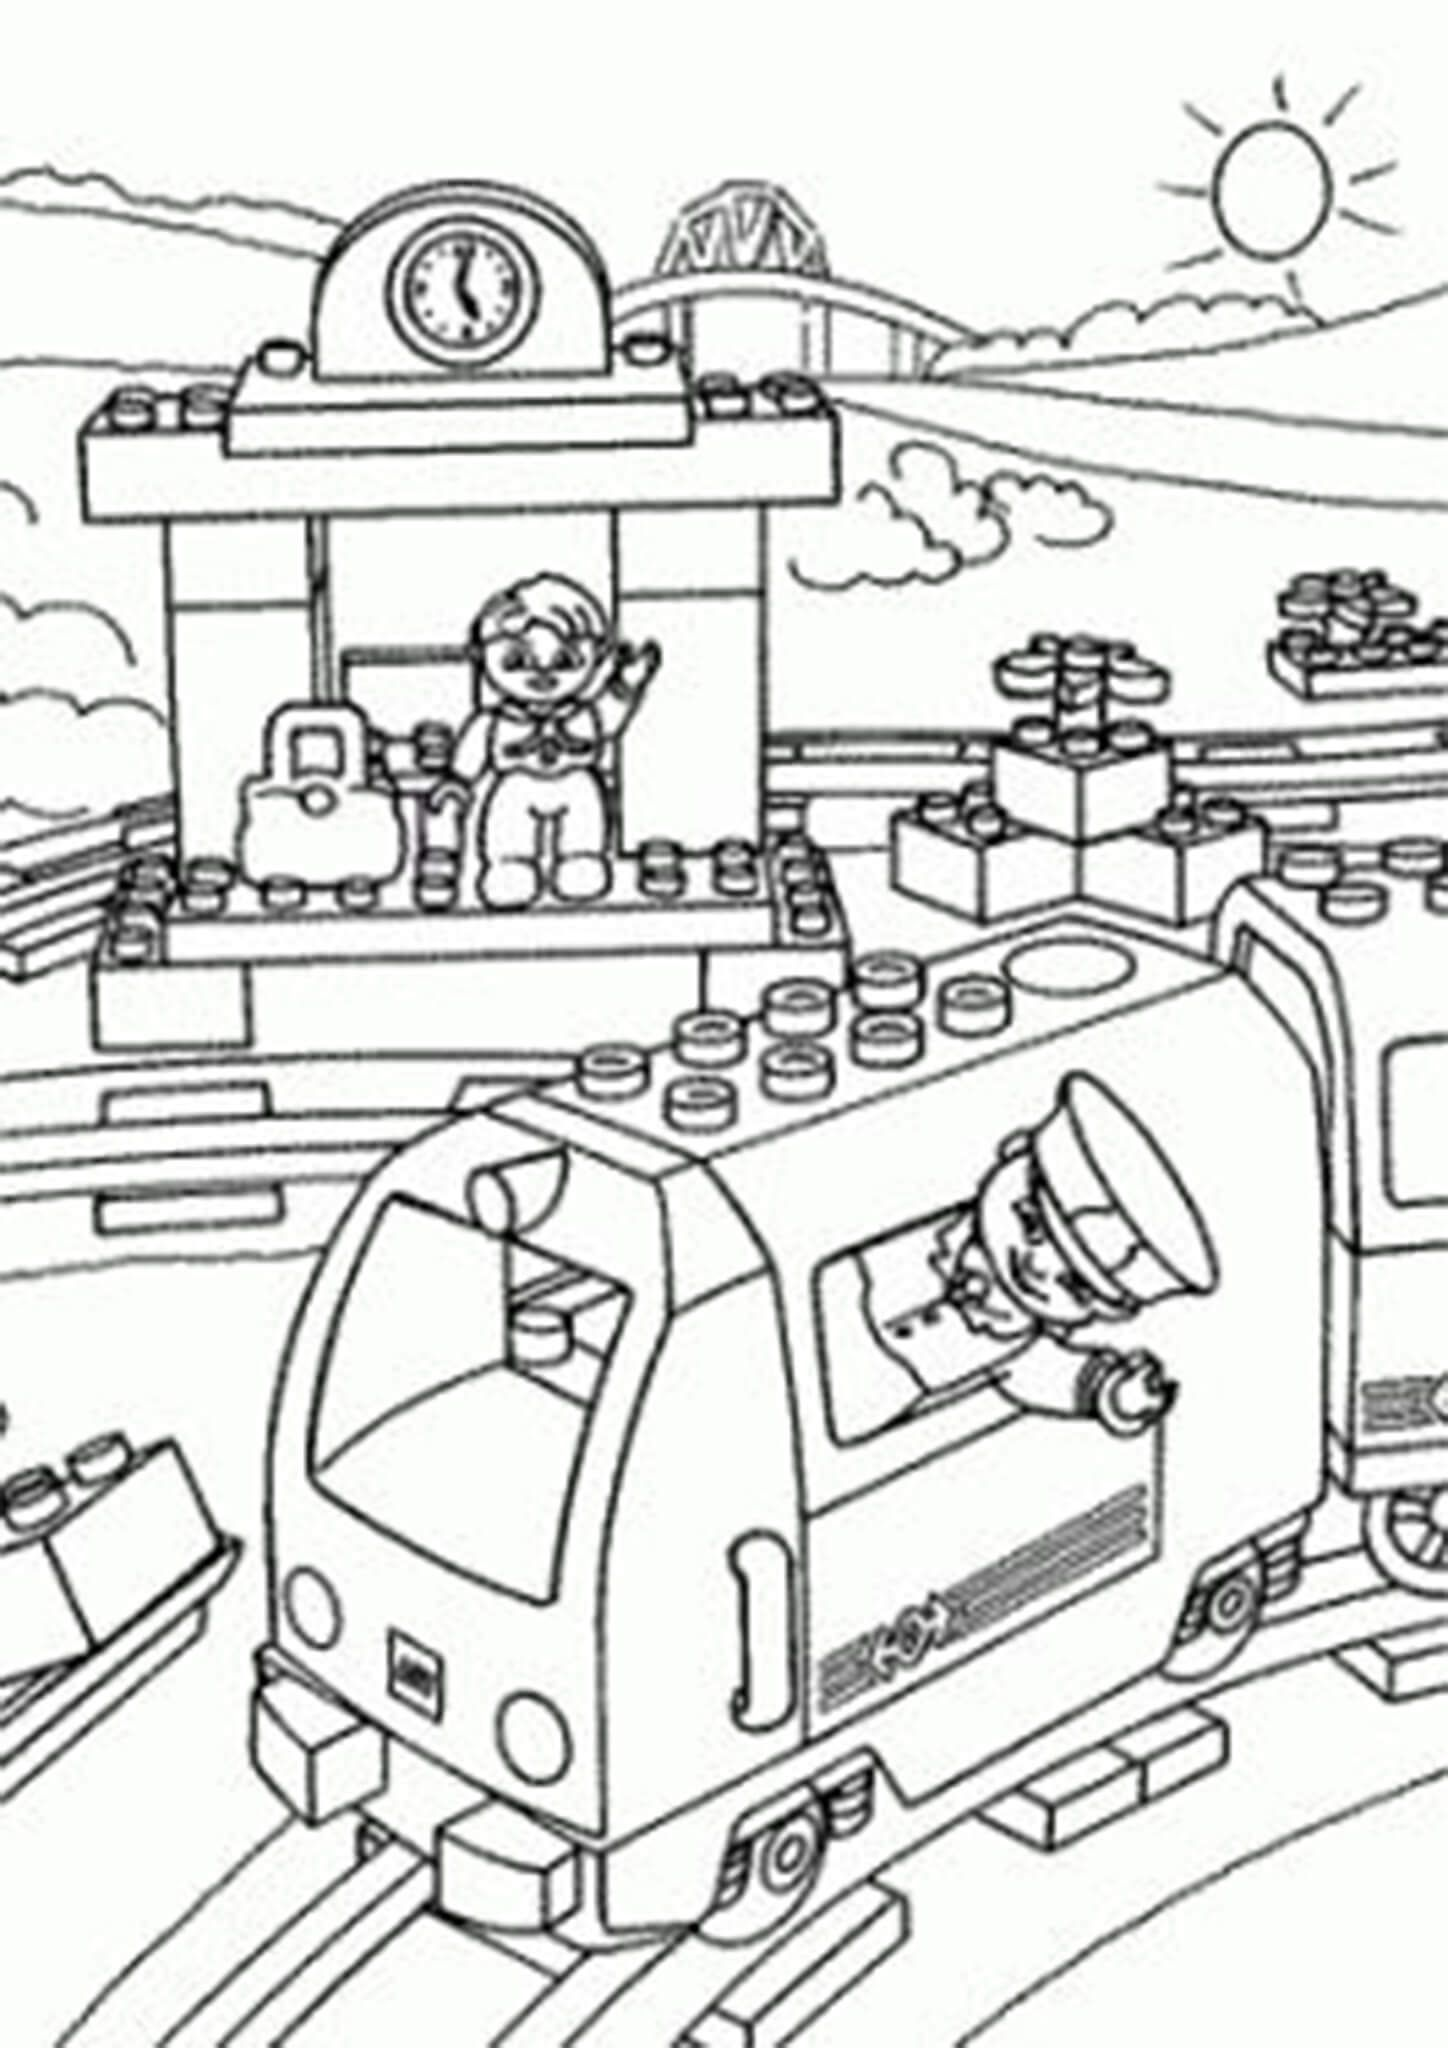 Free Easy To Print Lego Coloring Pages Lego Coloring Pages Lego Coloring Coloring Pages